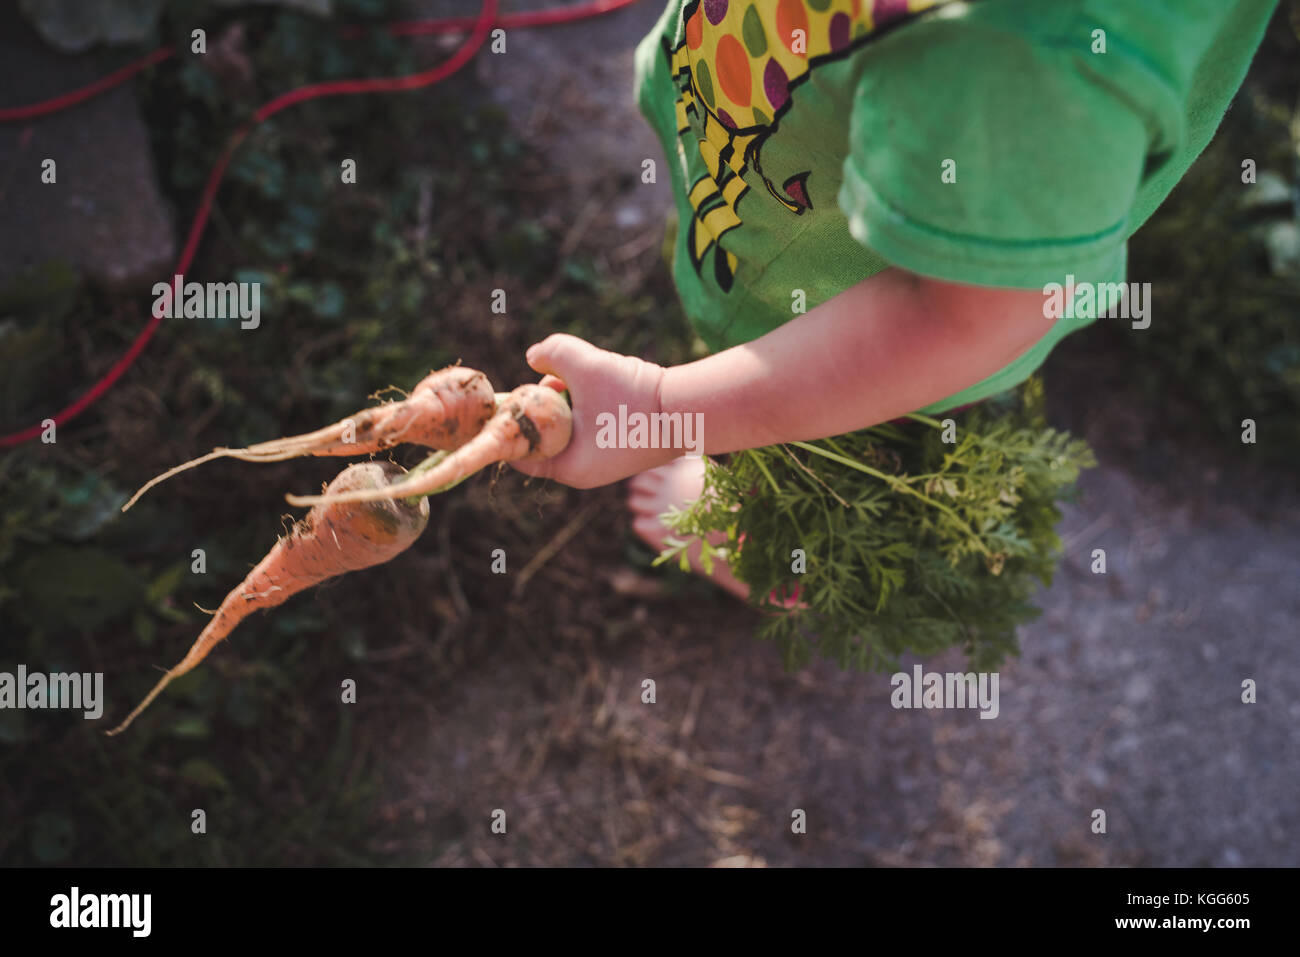 toddler holding carrots fresh out of a garden - Stock Image